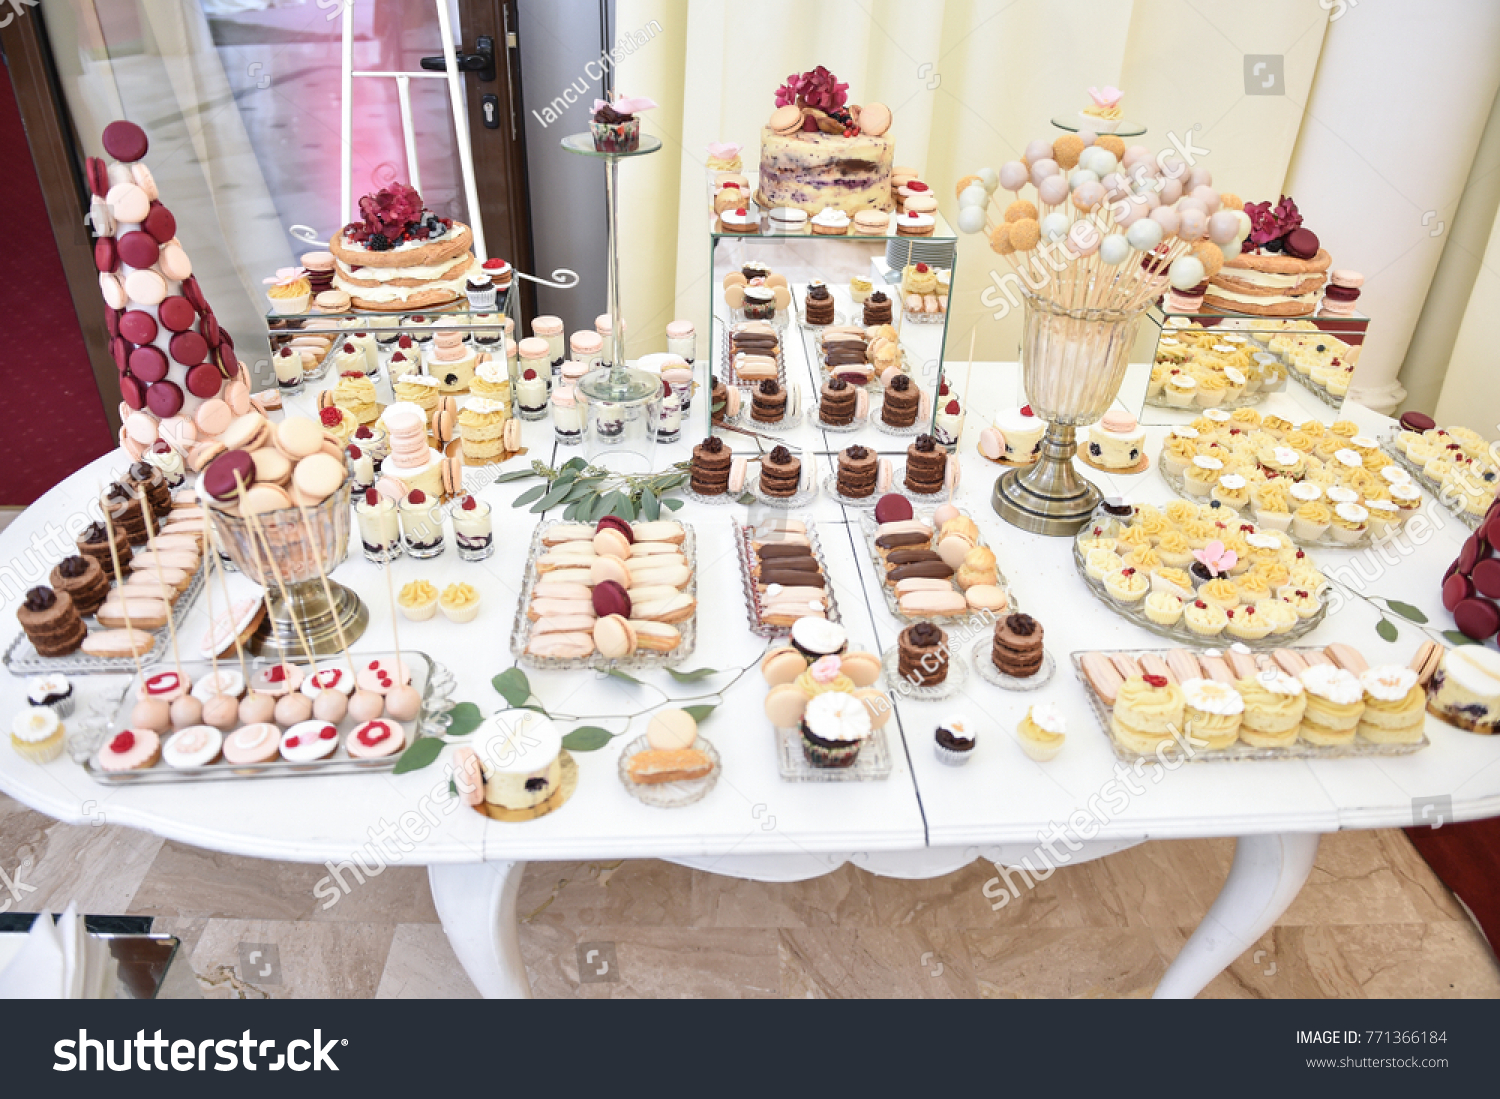 Wedding Decoration Pastel Colored Cupcakes Meringues Stock Photo